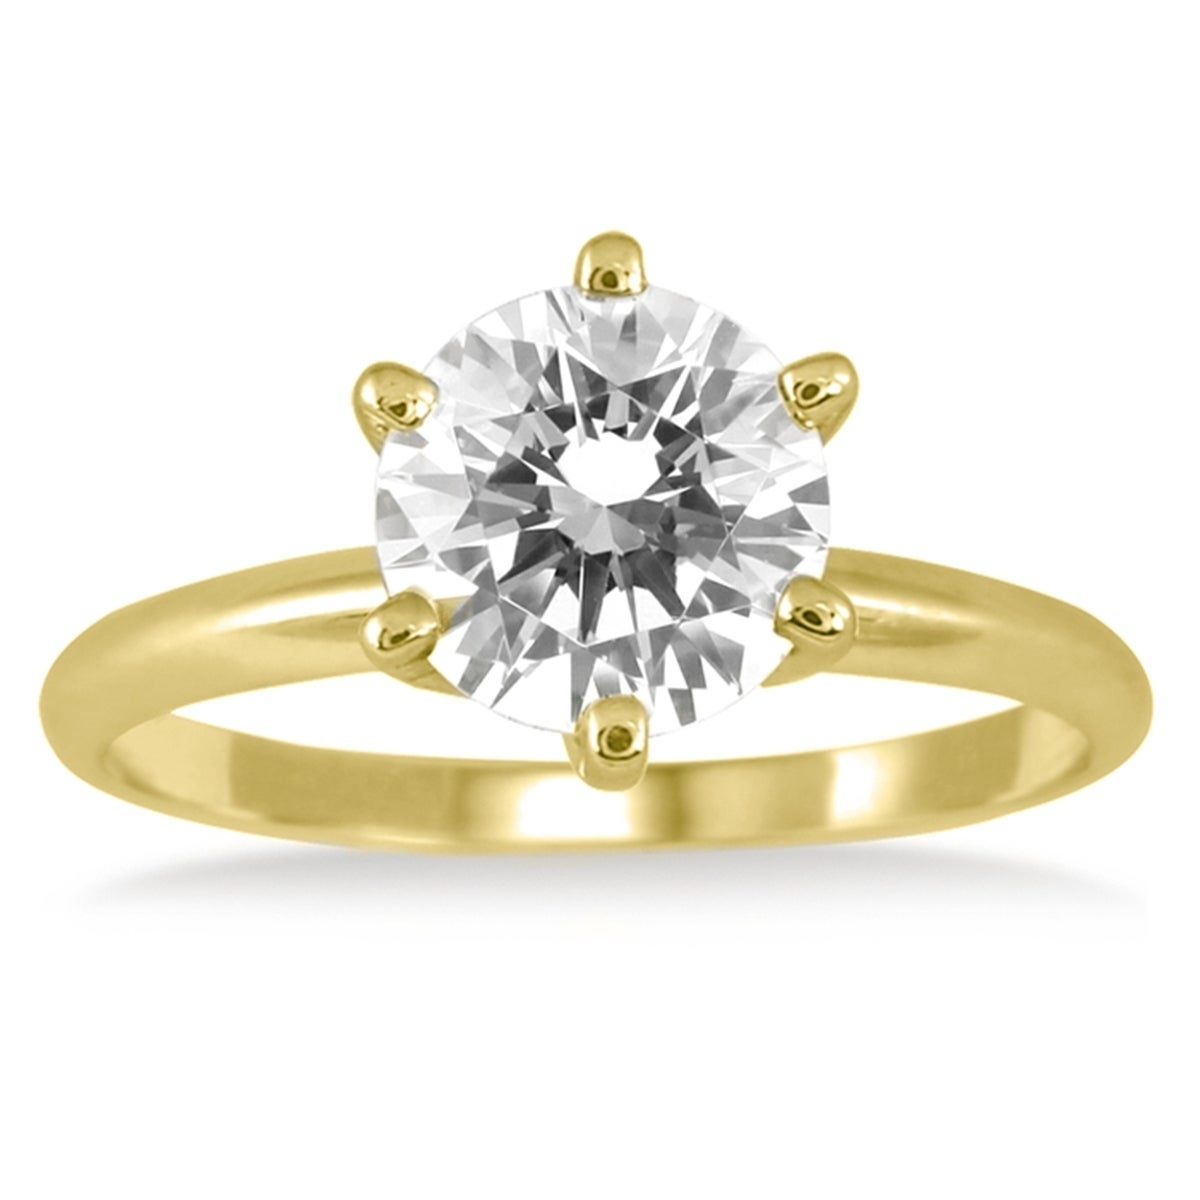 24f3c089383922 Shop Signature Quality 1 Carat Diamond Solitaire Ring in 18K Yellow Gold (G-H  Color, SI2-SI3 Clarity) - Free Shipping Today - Overstock - 20310867